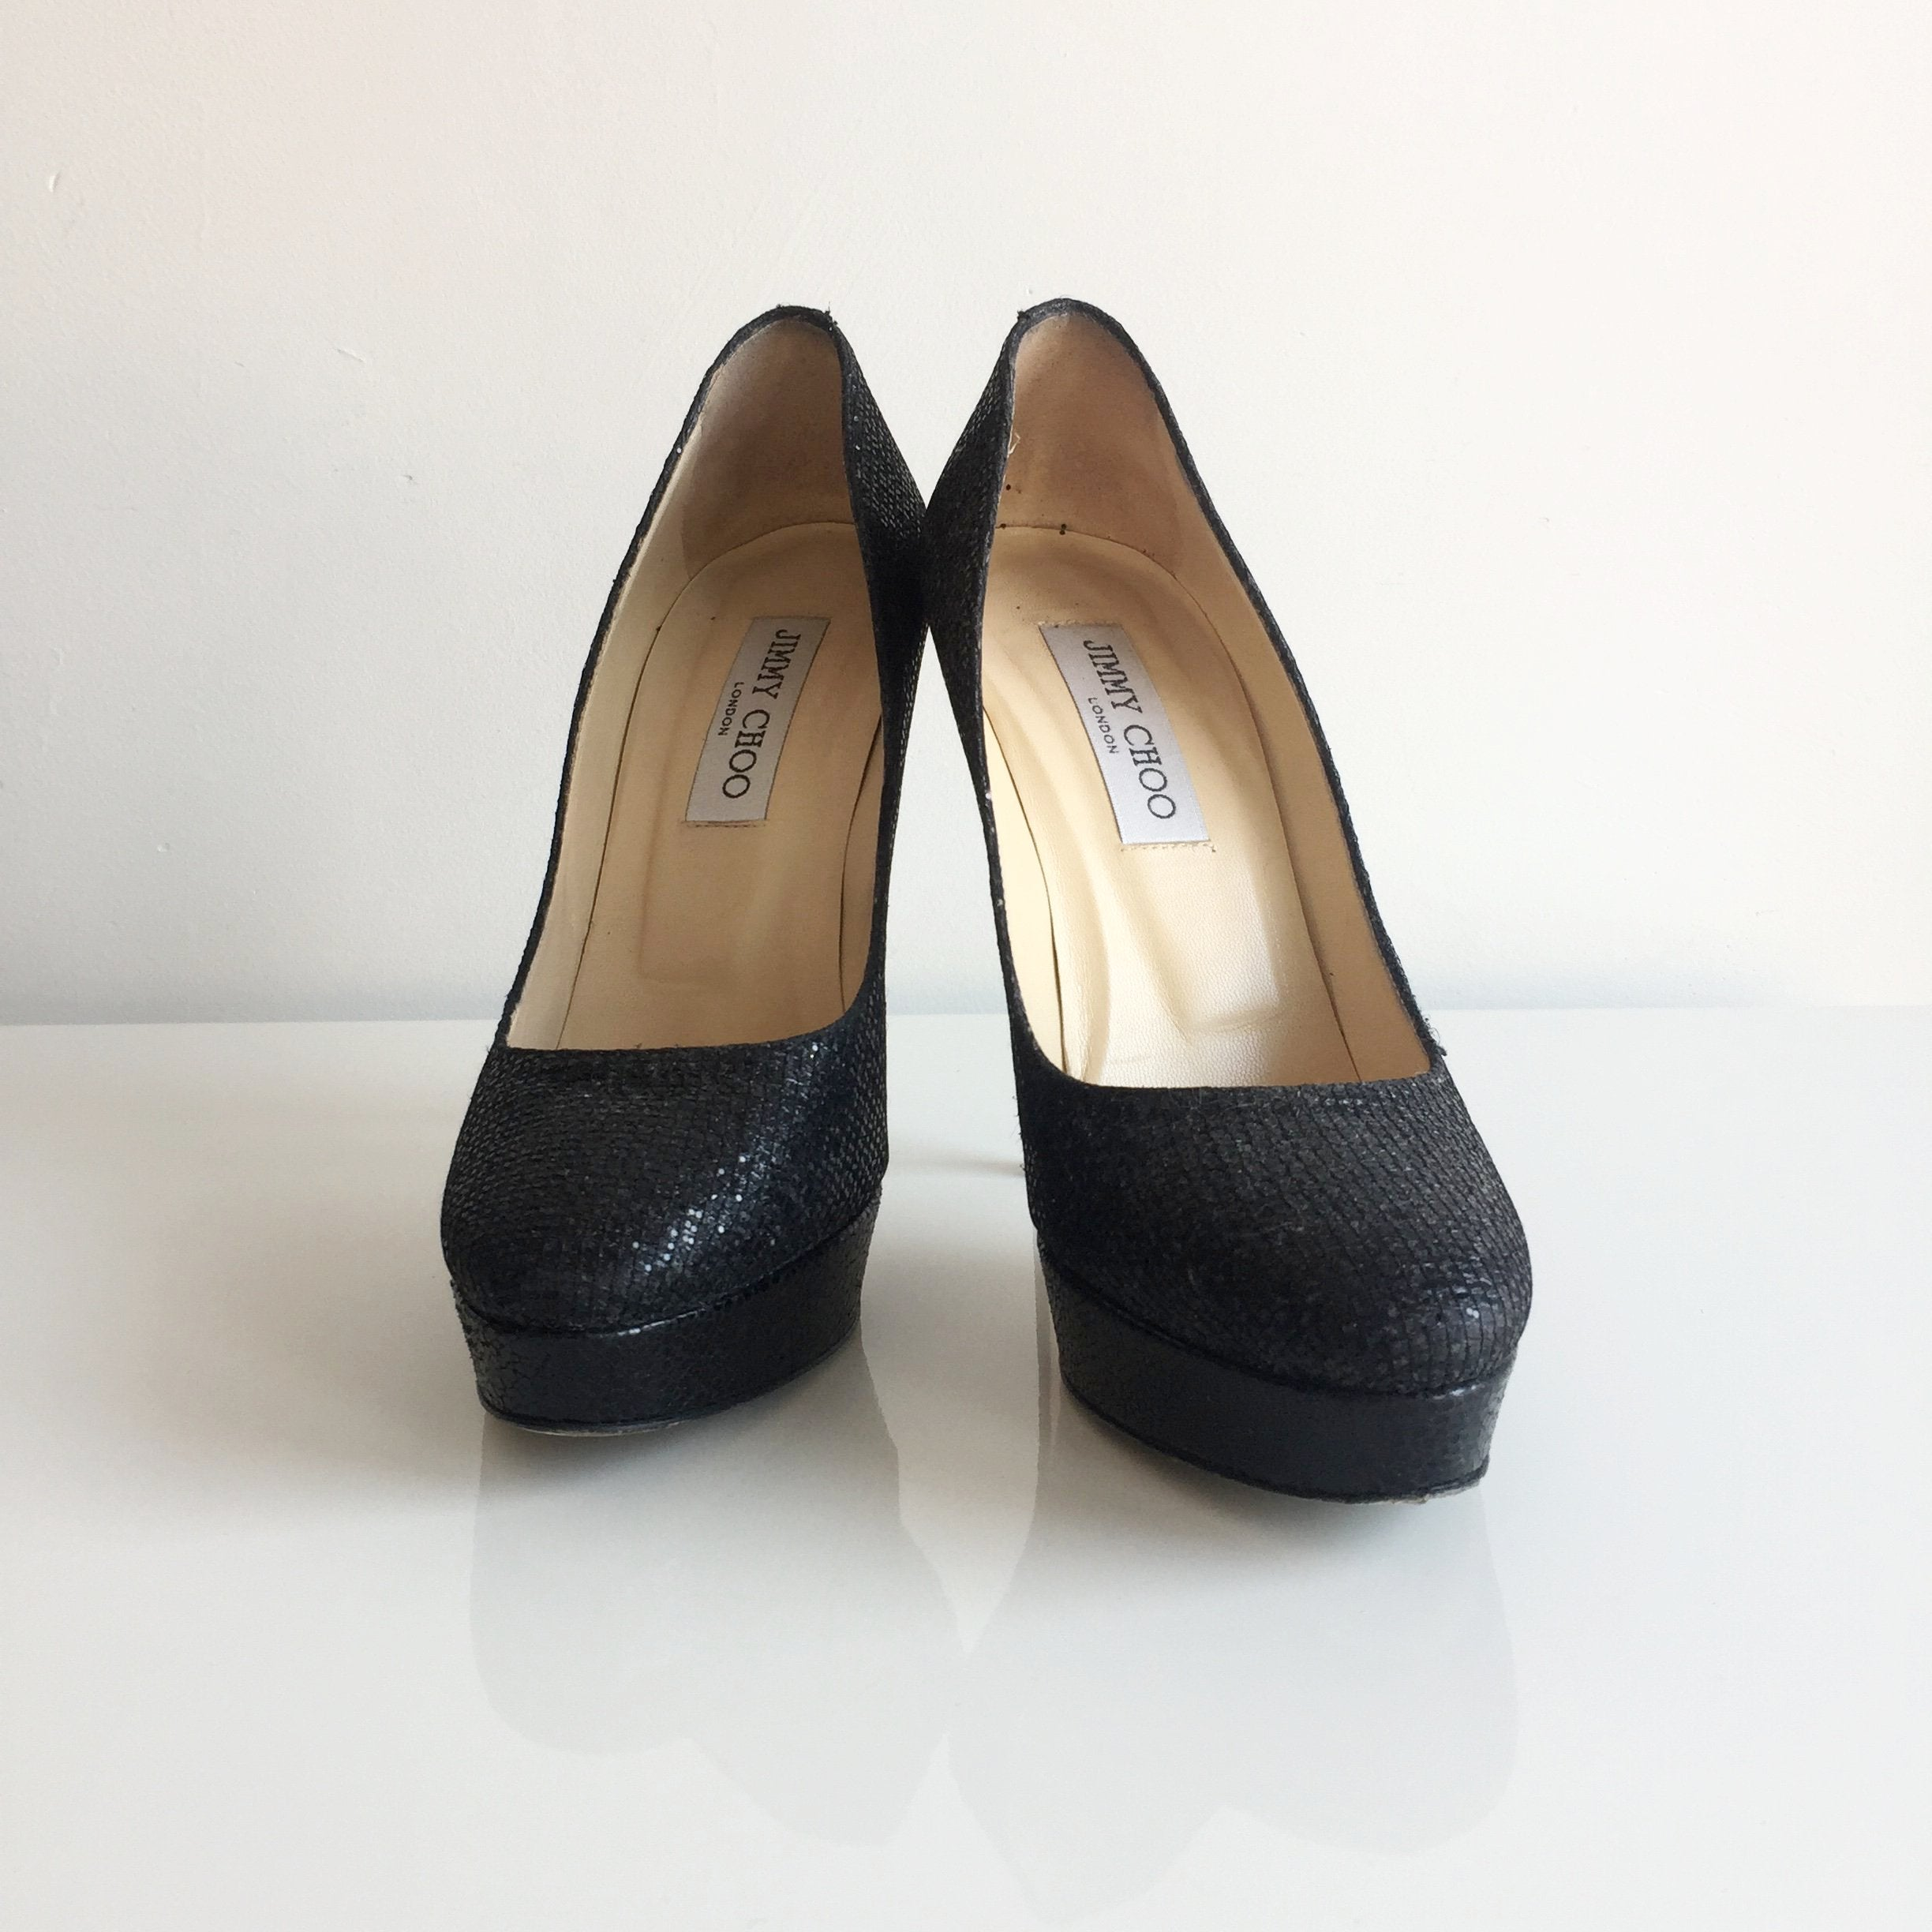 Authentic JIMMY CHOO Cosmic Glitter Black Pumps Size 7.5